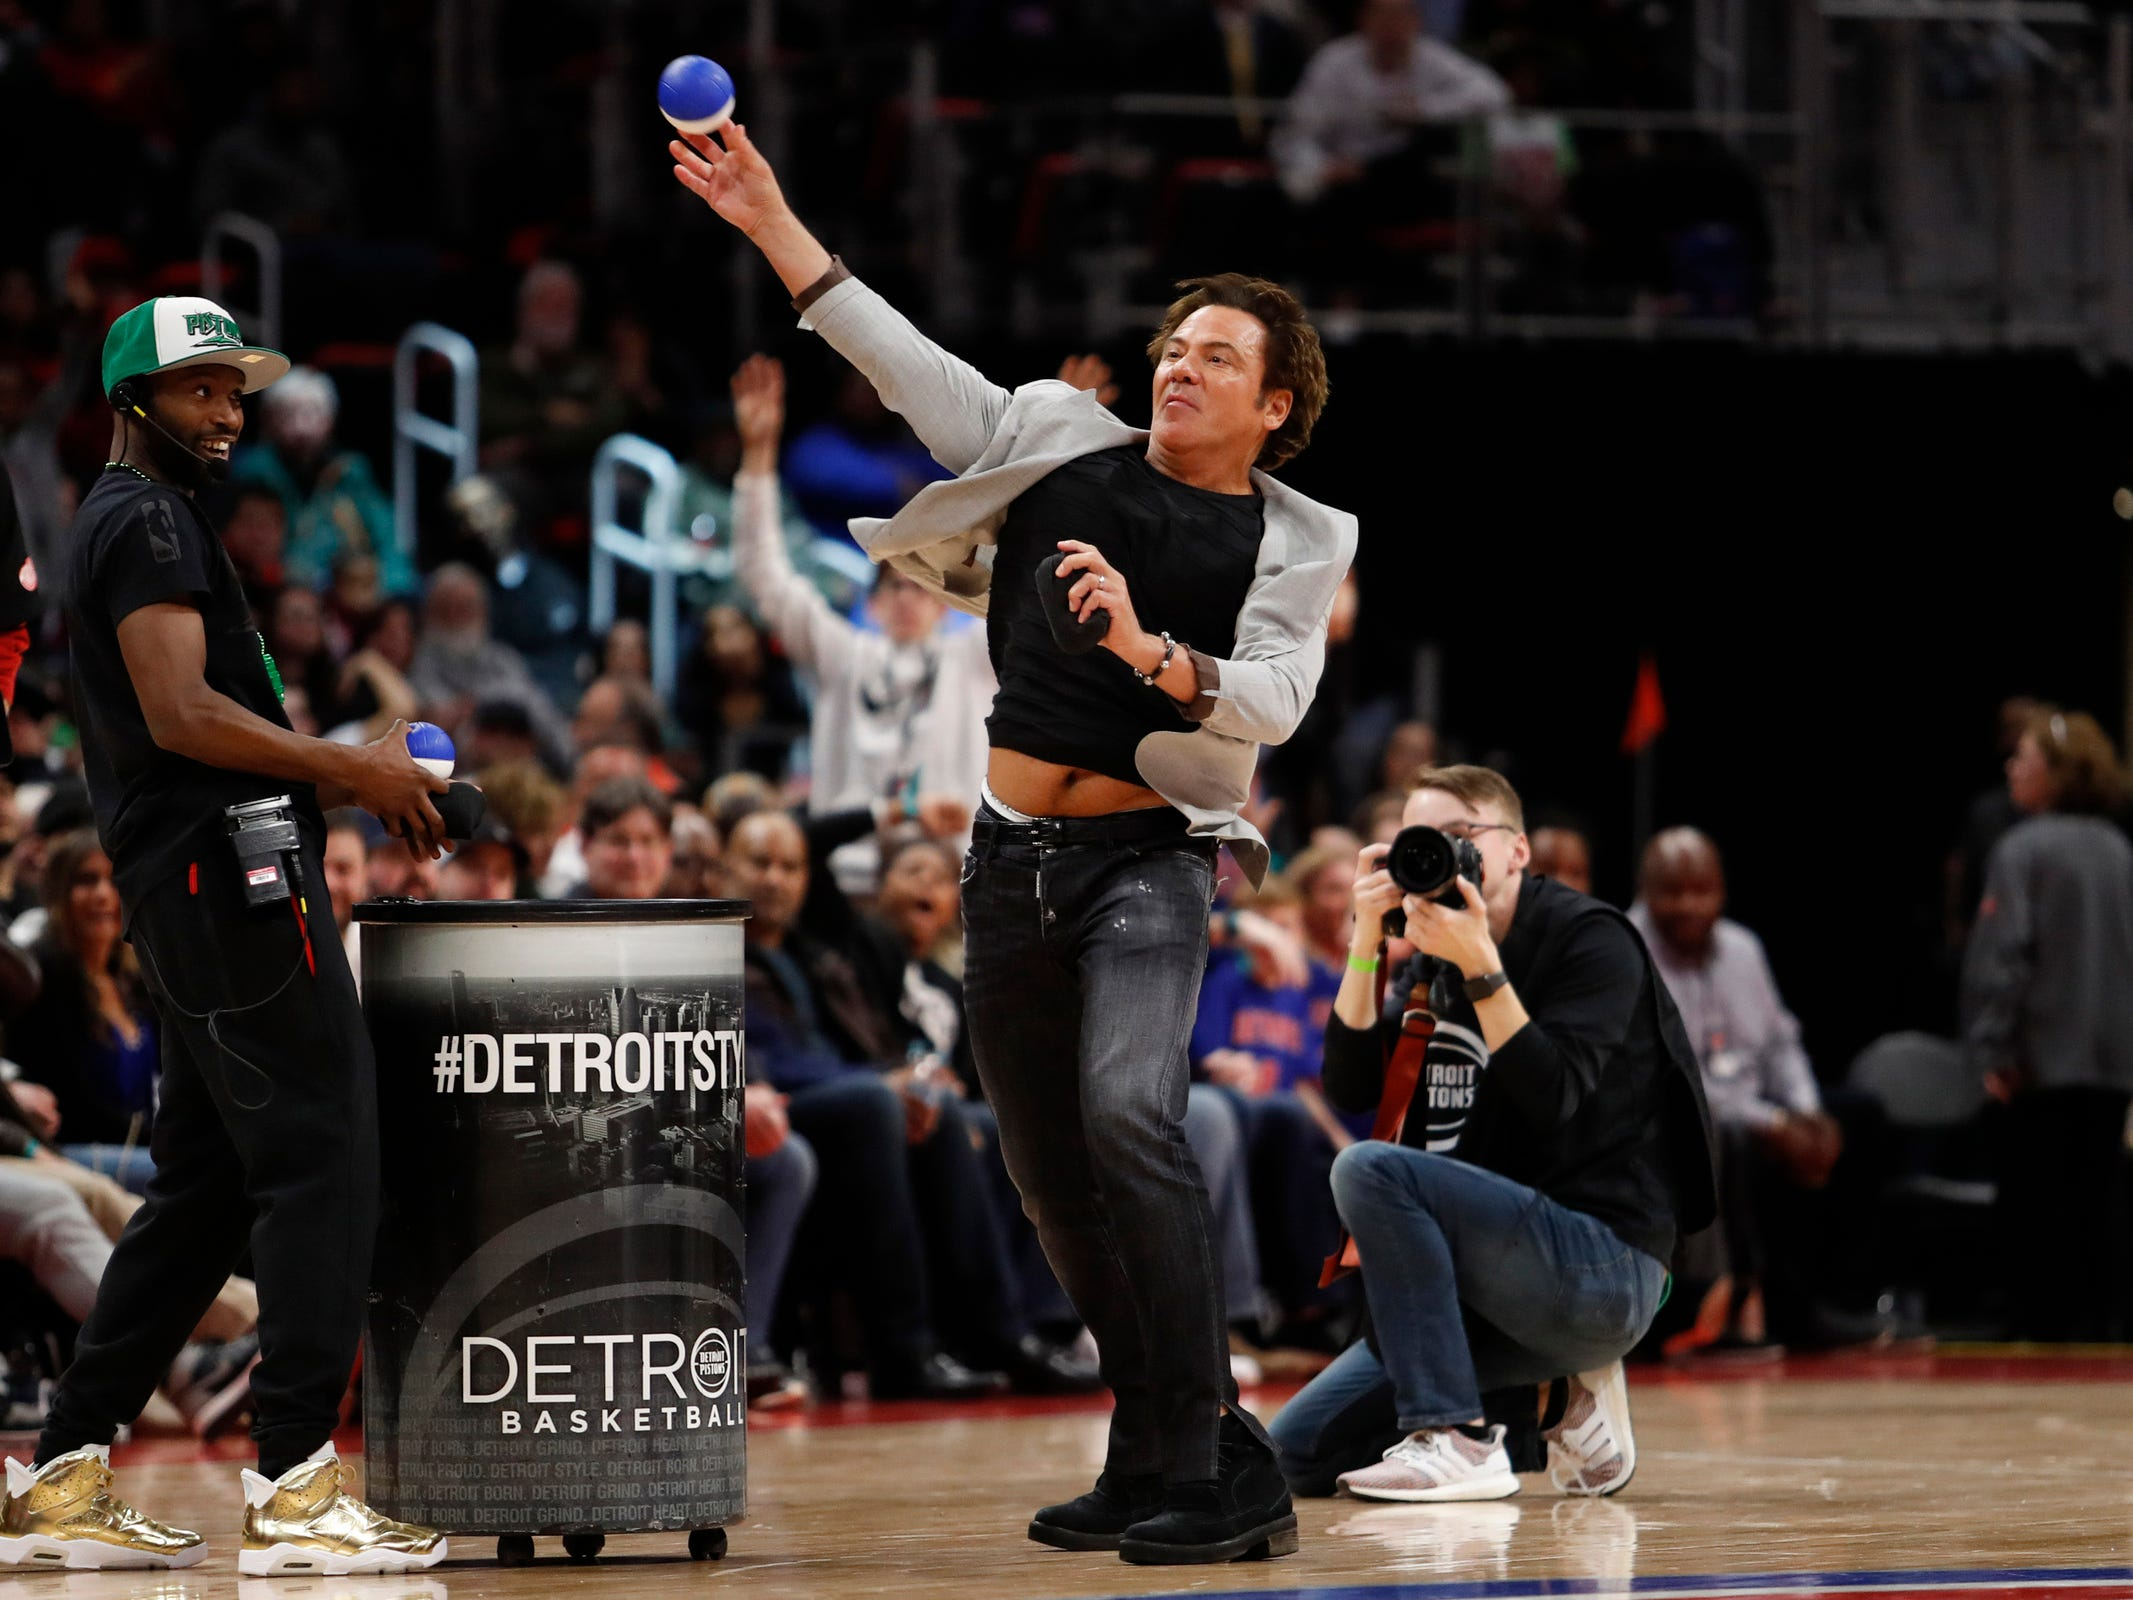 Detroit Pistons owner Tom Gores throws a ball into the crowd during the fourth quarter of the 110-107 win over the Toronto Raptors at Little Caesars Arena, Sunday, March 17, 2019.